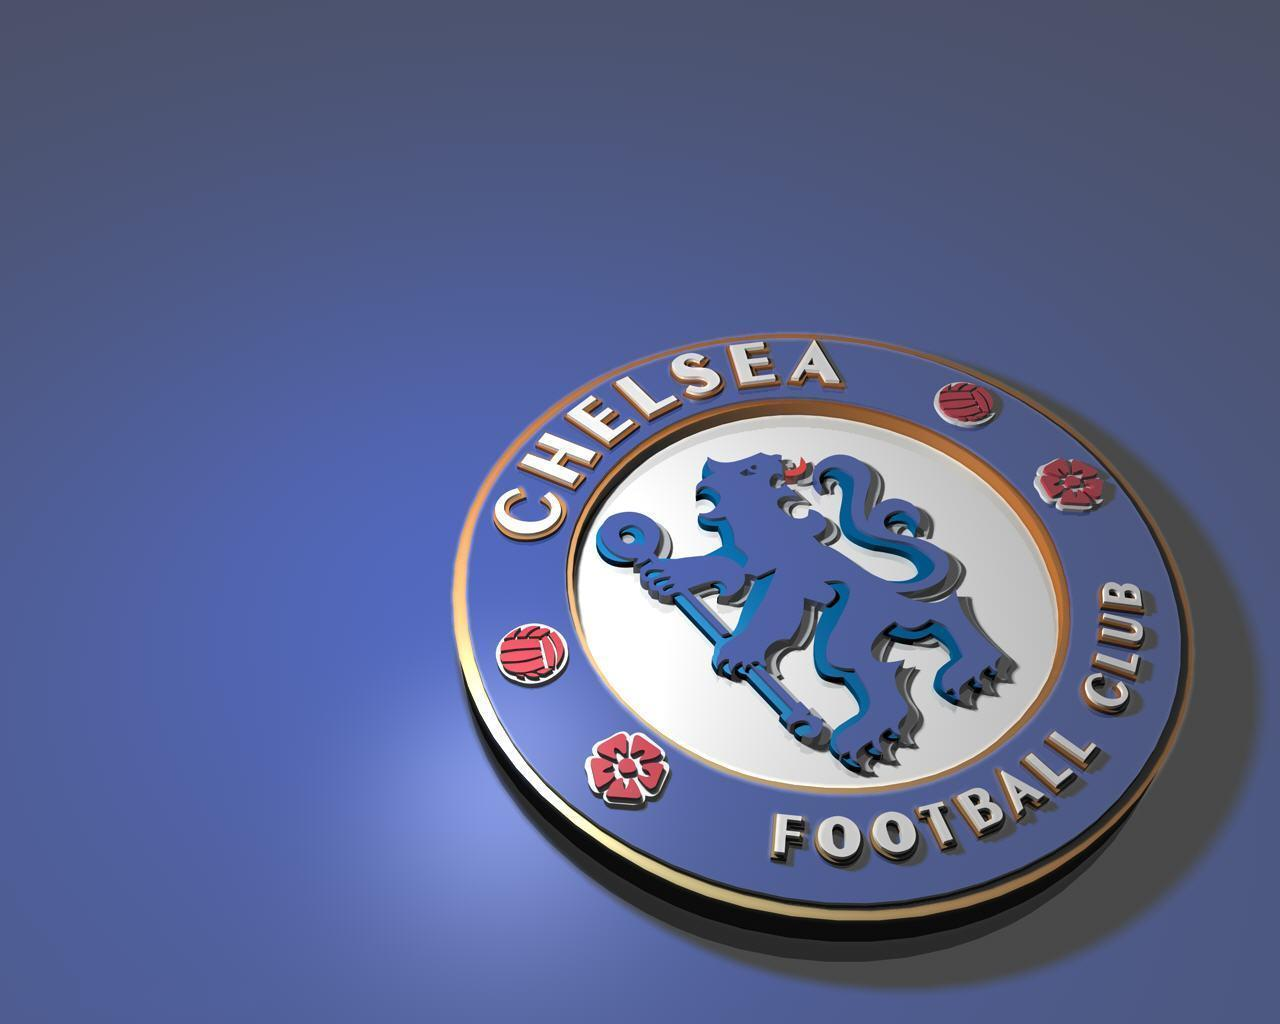 Chelsea Fc Logo Wallpapers HD Wallpapers